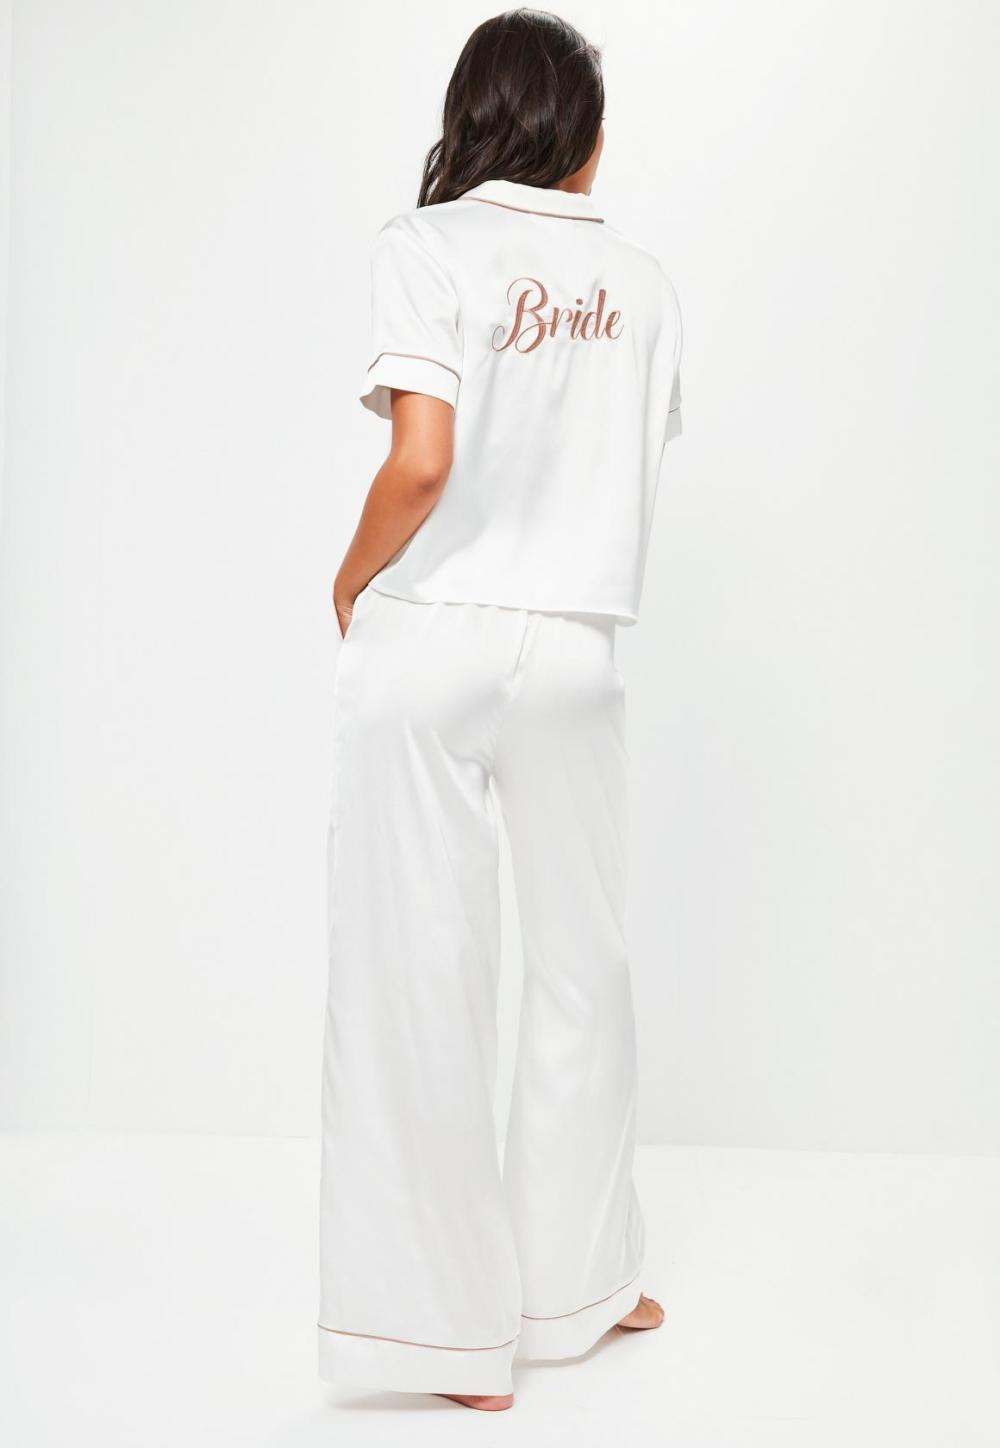 white-satin-bride-piped-pyjama-set